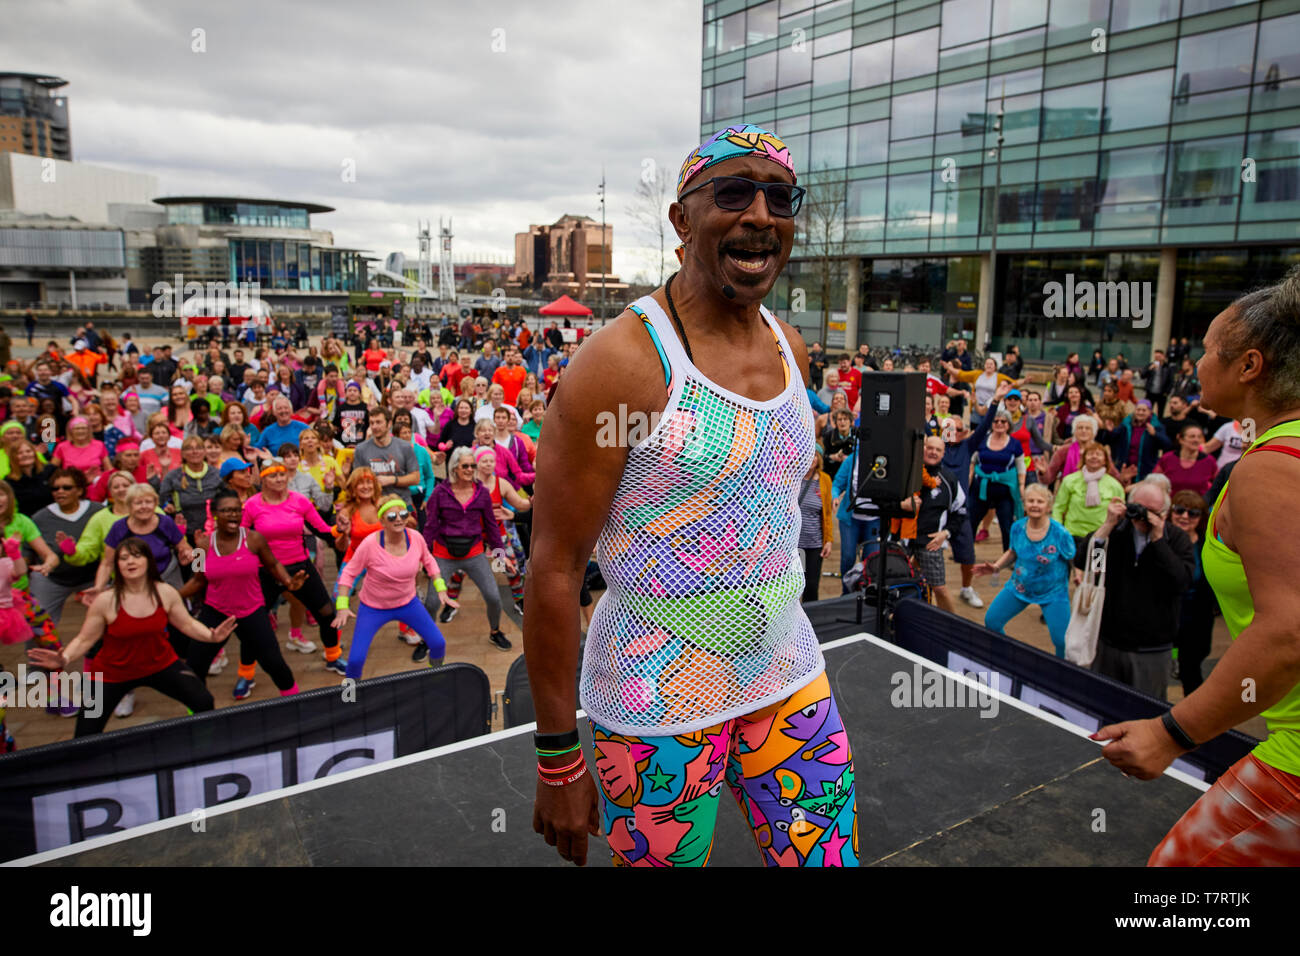 MR Motivated working out at MediaCityUK - Stock Image